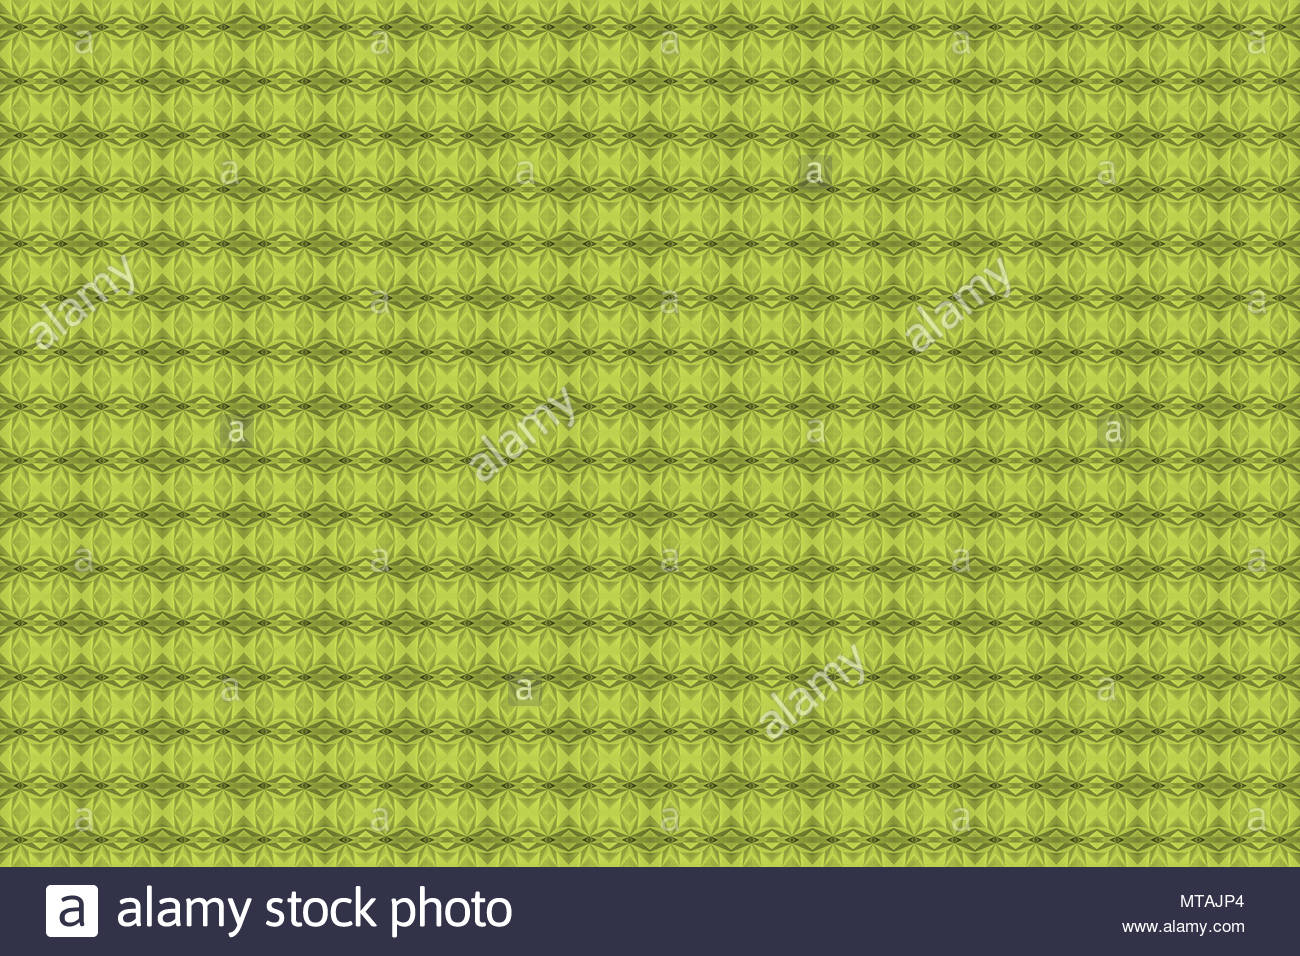 Pantone 13 0550 Lime Punch Yellow Green Abstract Graphic Design Background Wallpaper Pattern